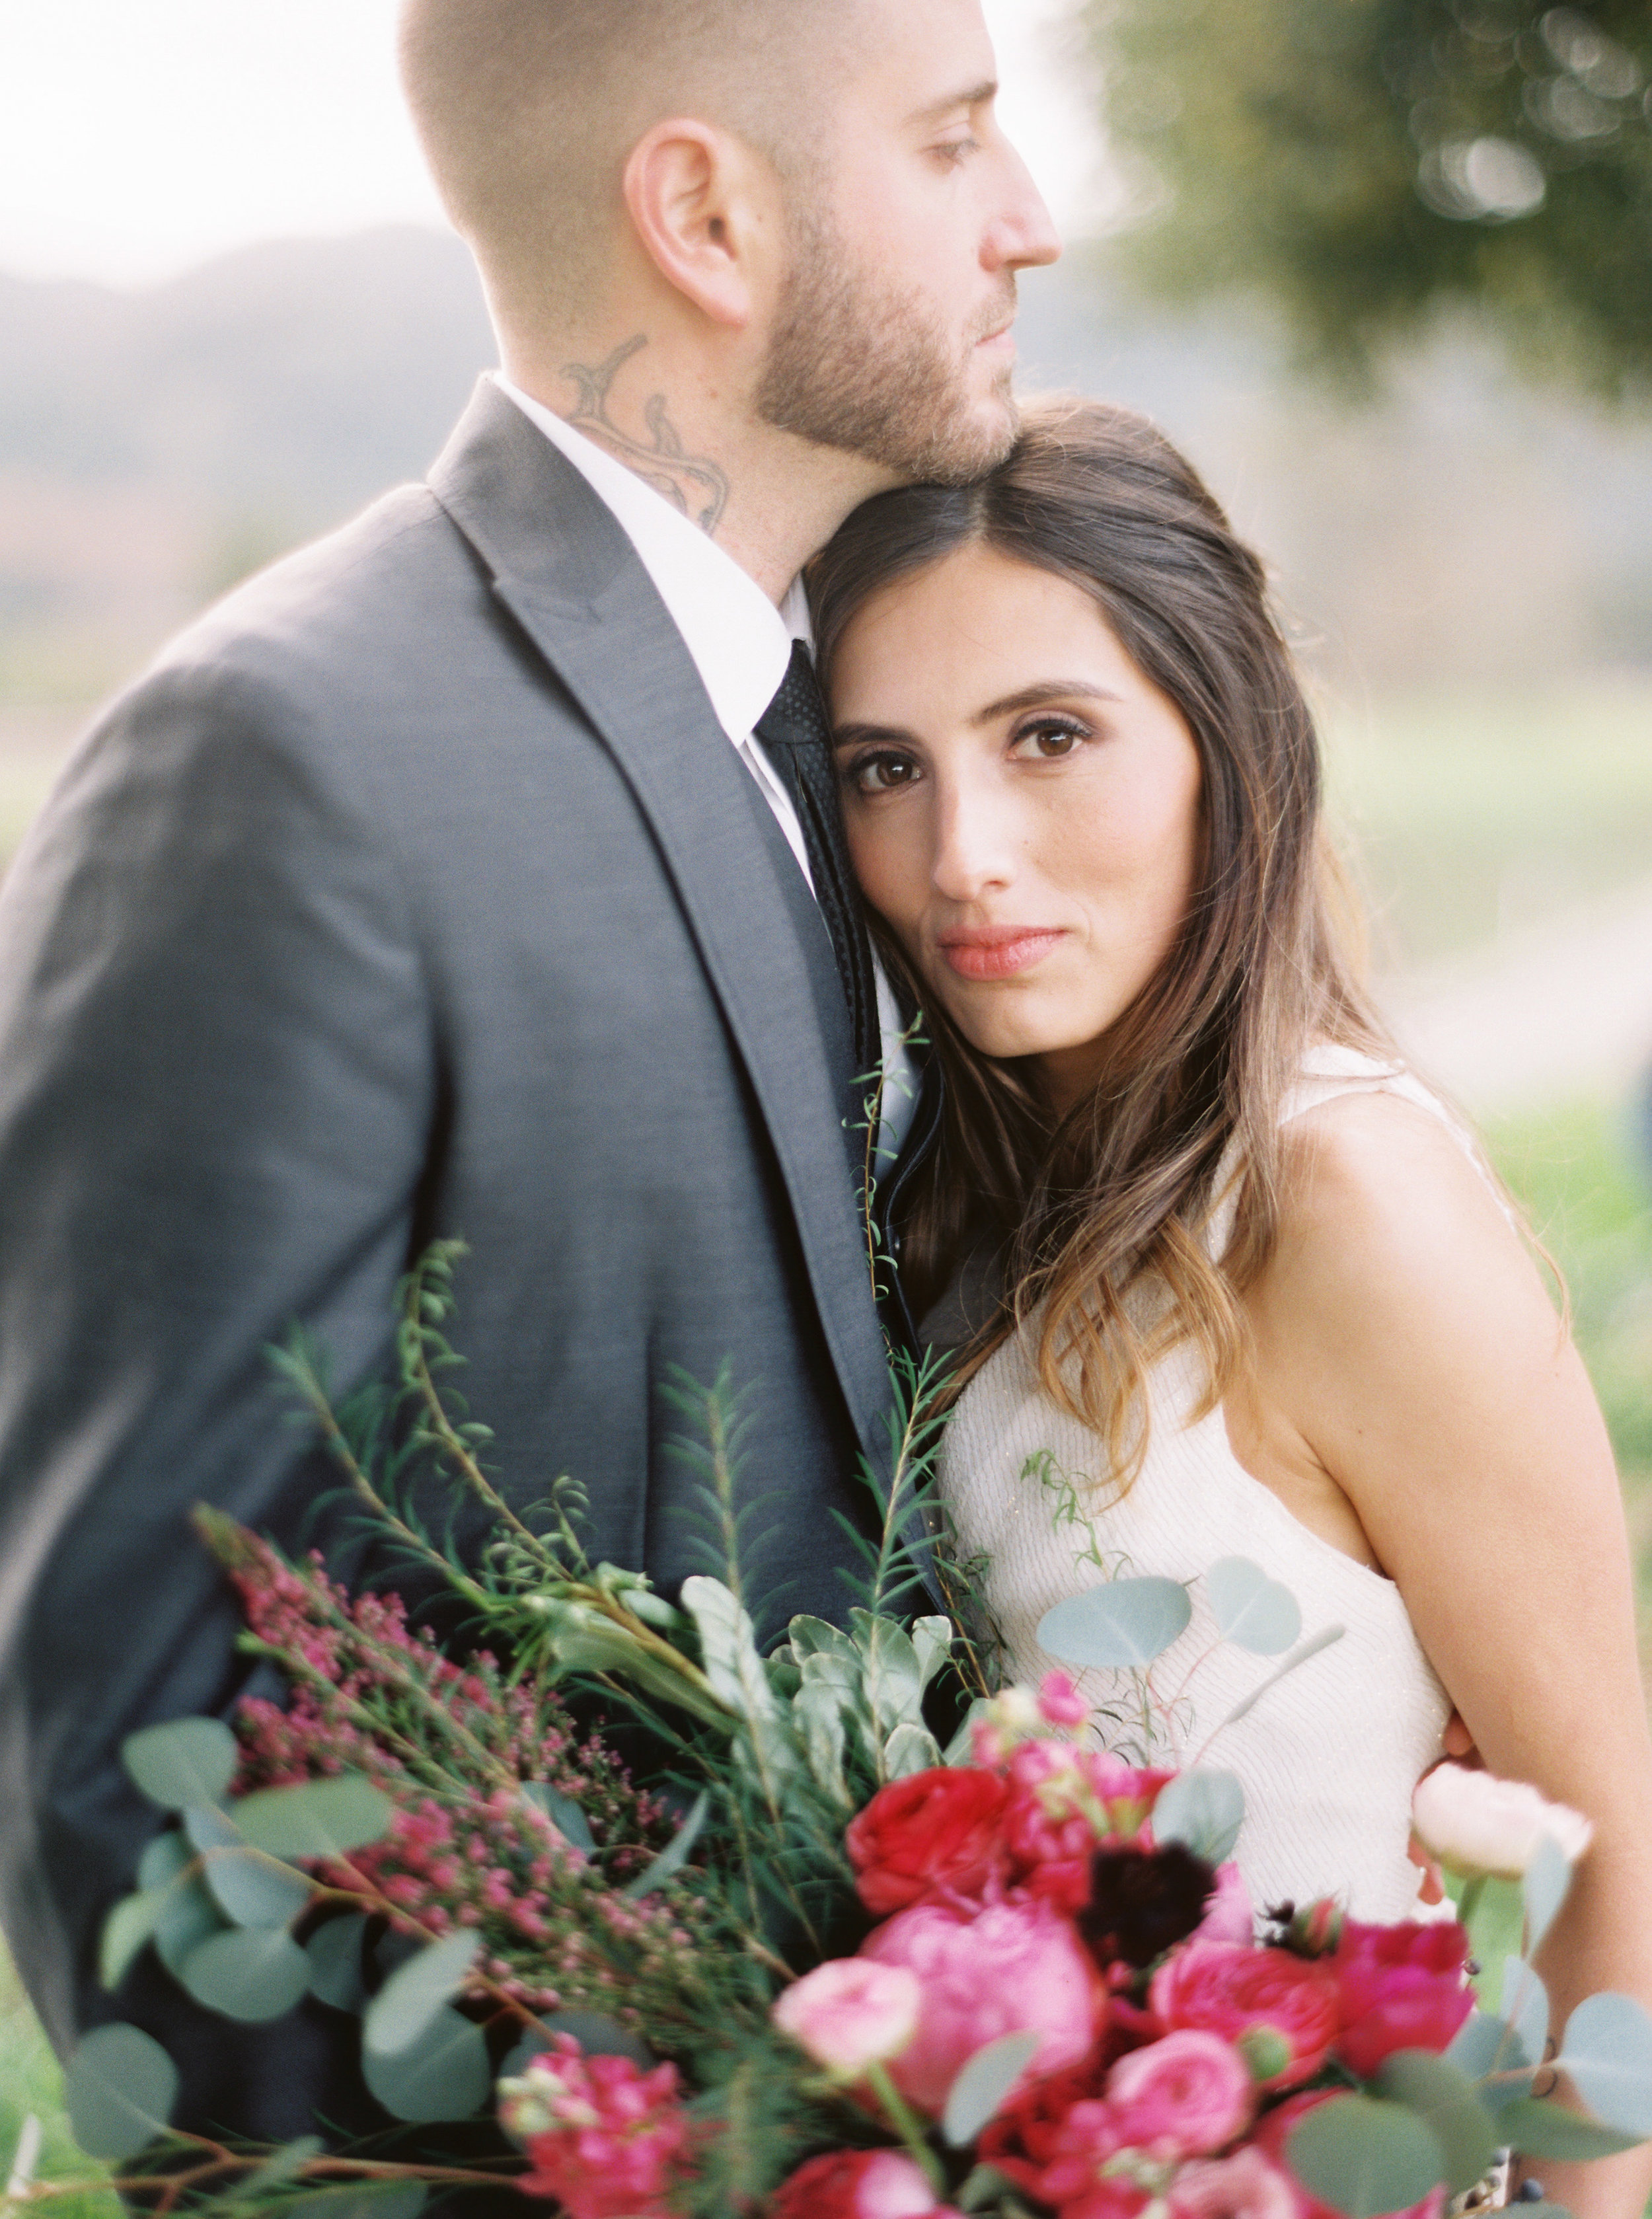 boho-inspired-wedding-at-casa-bella-in-sunol-california-45.jpg